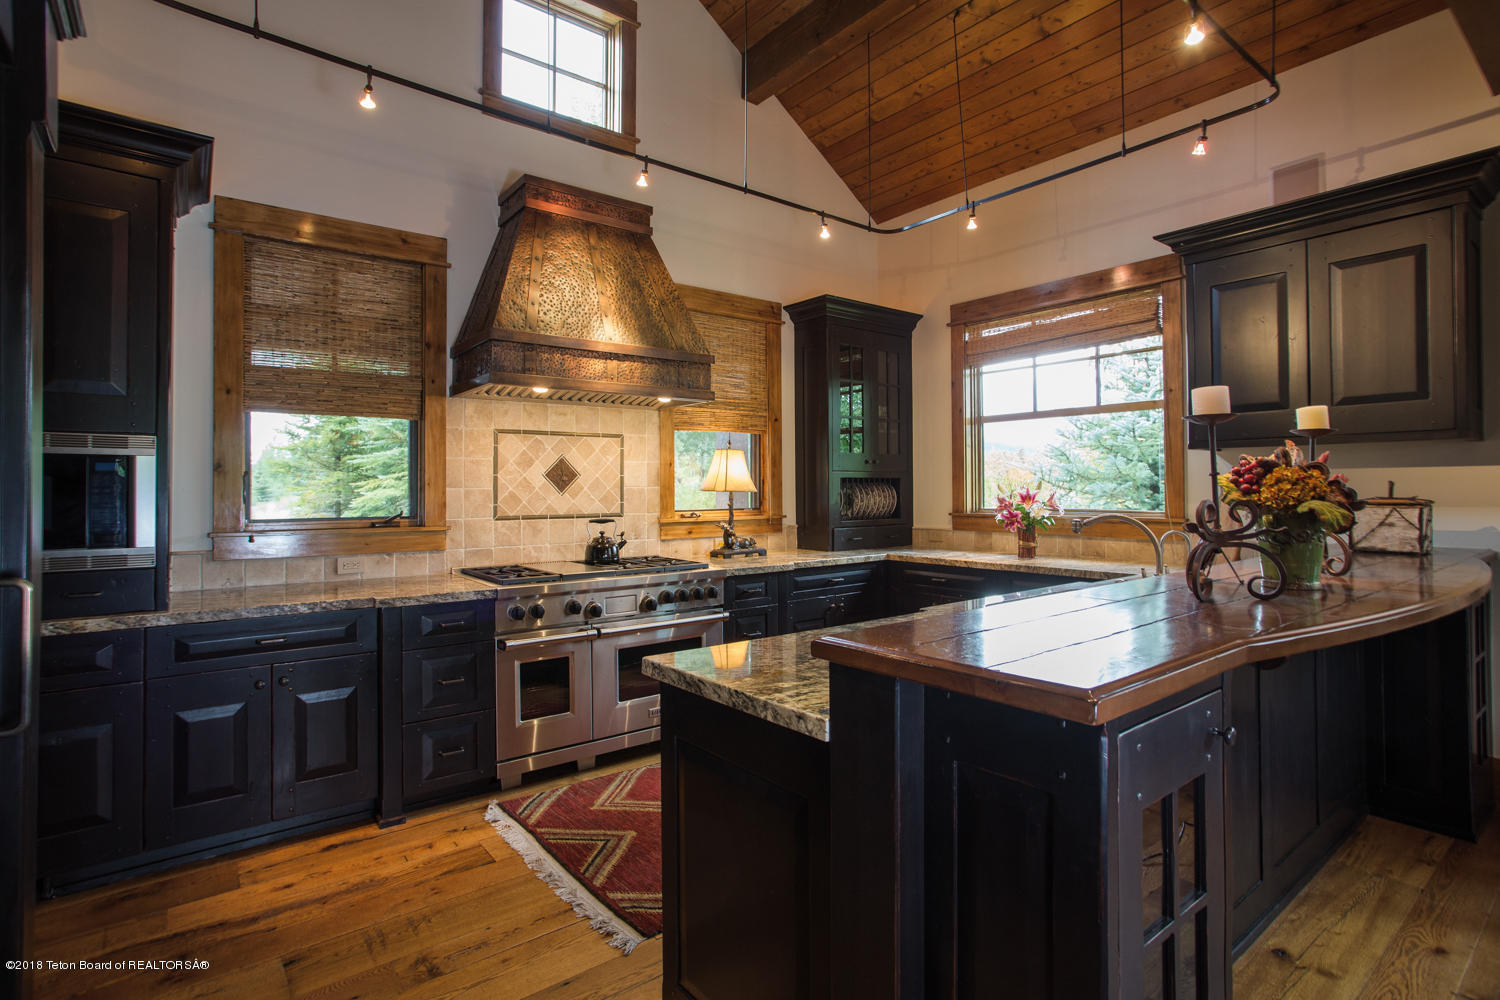 2775 S Silver Fox, Jackson, WY.  MLS# 18-2642   Valley 1 Realty   RE The Kitchen Jackson Wy on the gun barrel jackson wy, the kitchen boston ma, the kitchen lake charles la, the local jackson wy, the kitchen great falls mt, the kitchen denver co, the indian jackson wy,